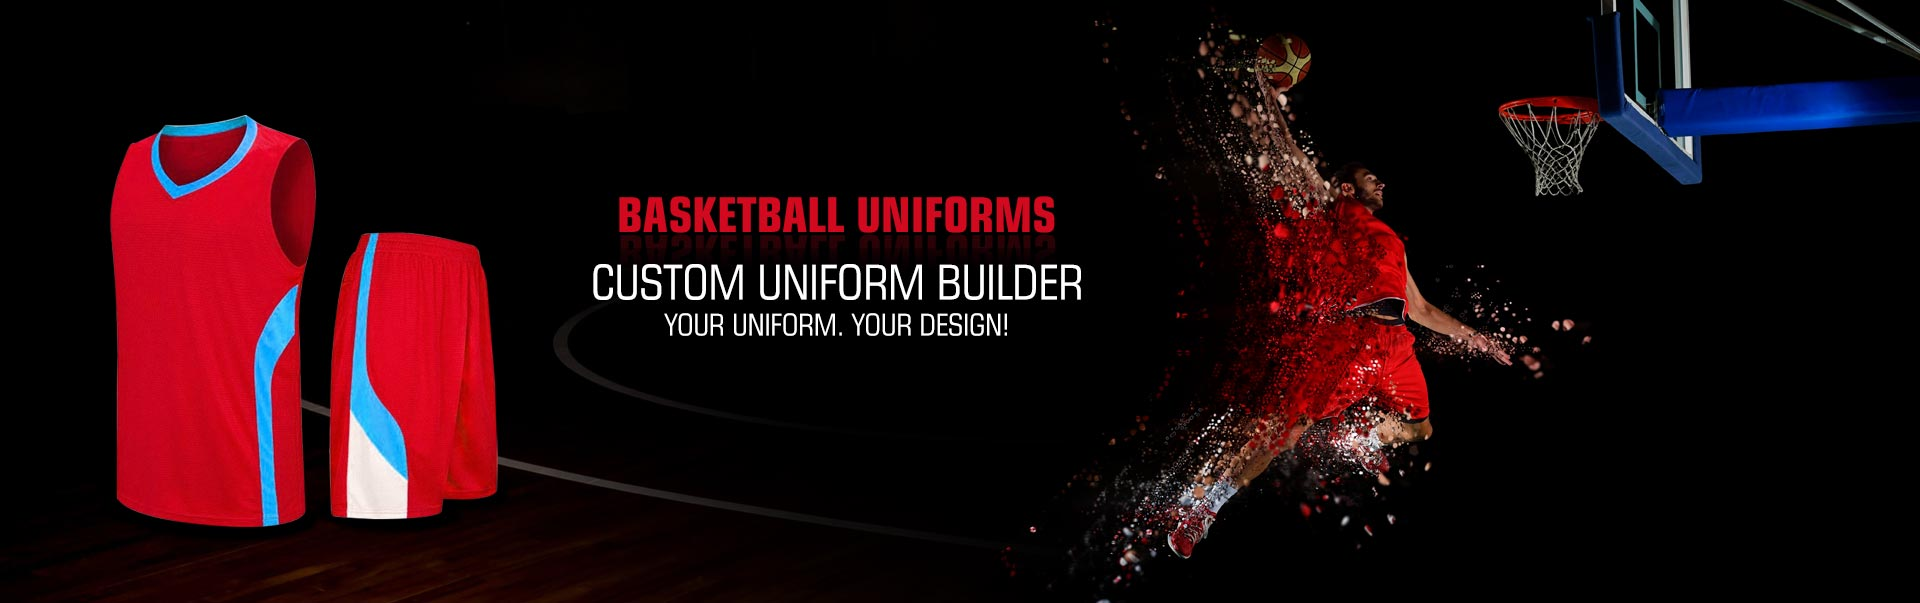 Basketball Uniforms Wholesaler, Suppliers in Vladikavkaz